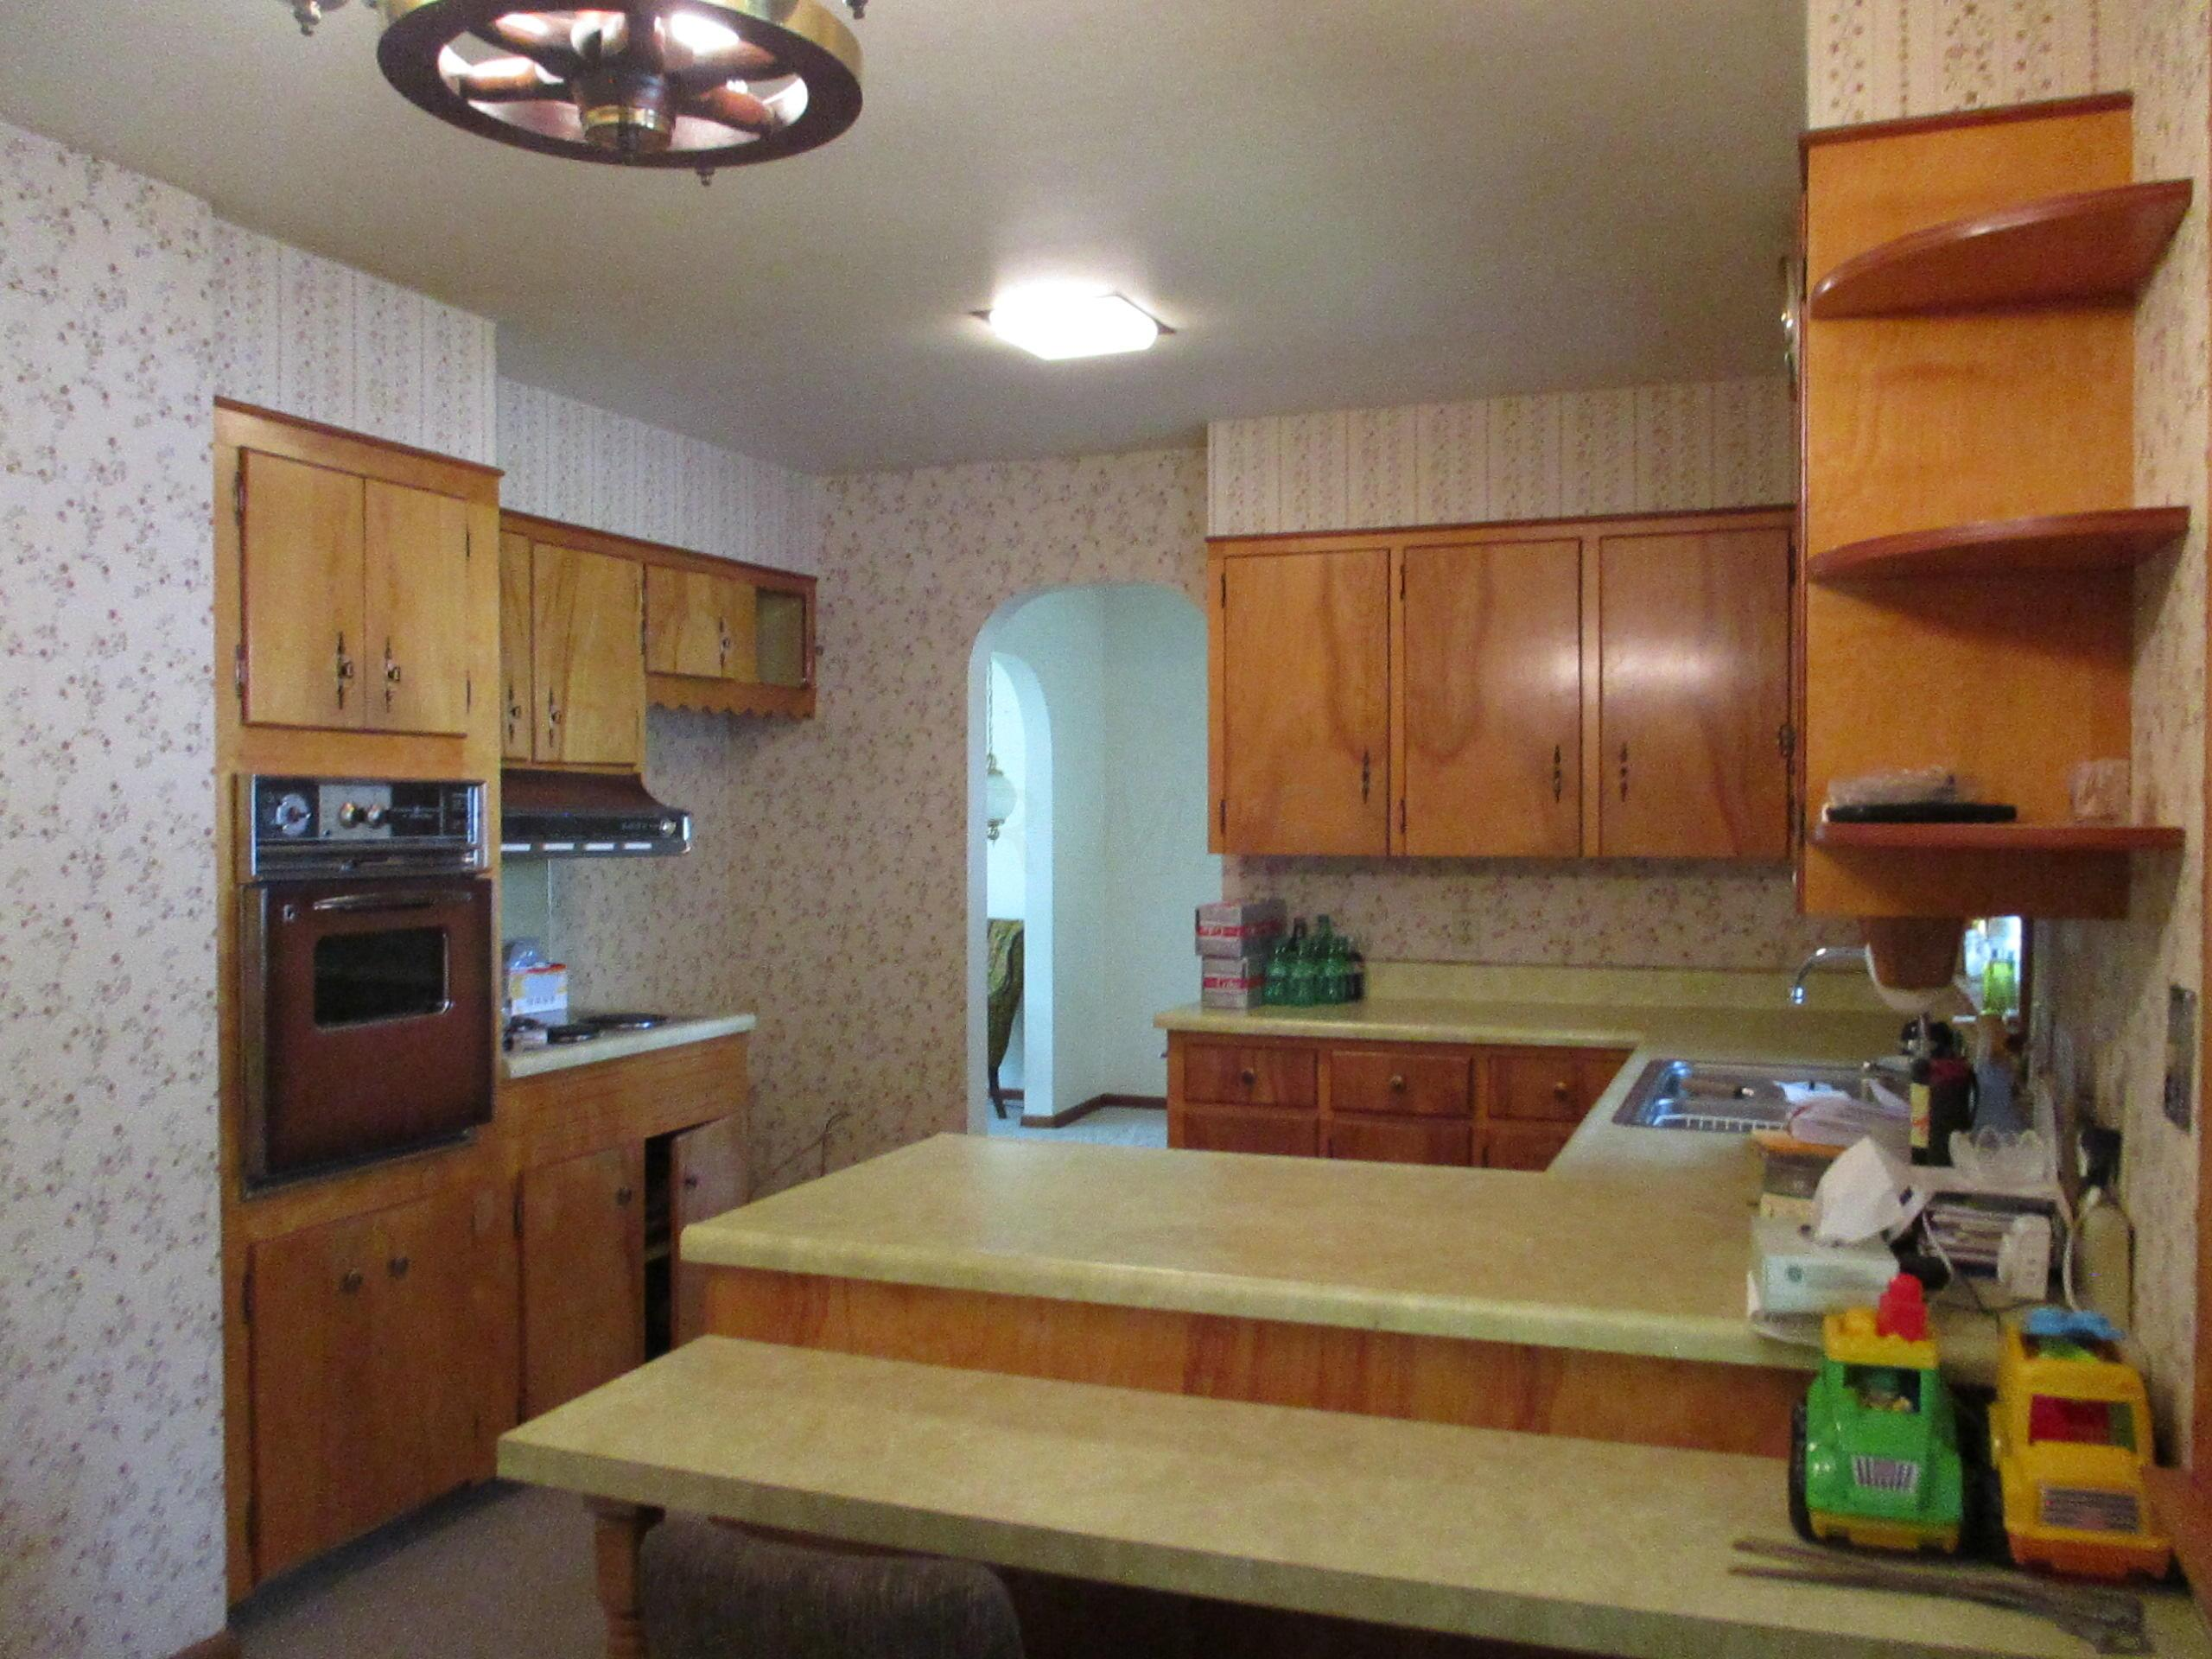 578 W Marion St  - 7665 CR 201 021